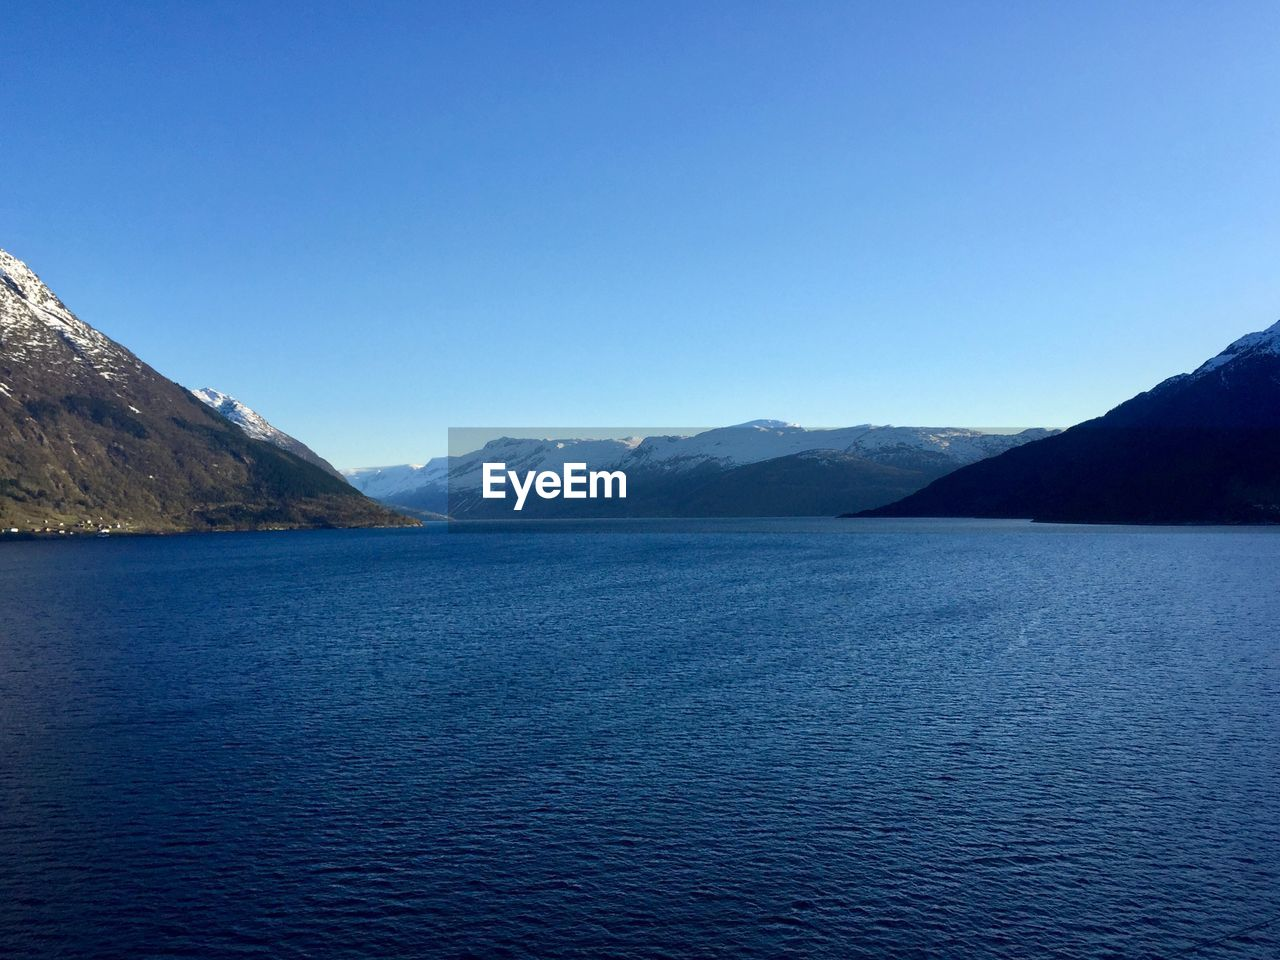 water, scenics - nature, beauty in nature, mountain, tranquil scene, sky, waterfront, tranquility, blue, copy space, clear sky, idyllic, mountain range, day, no people, nature, sea, non-urban scene, outdoors, mountain peak, range